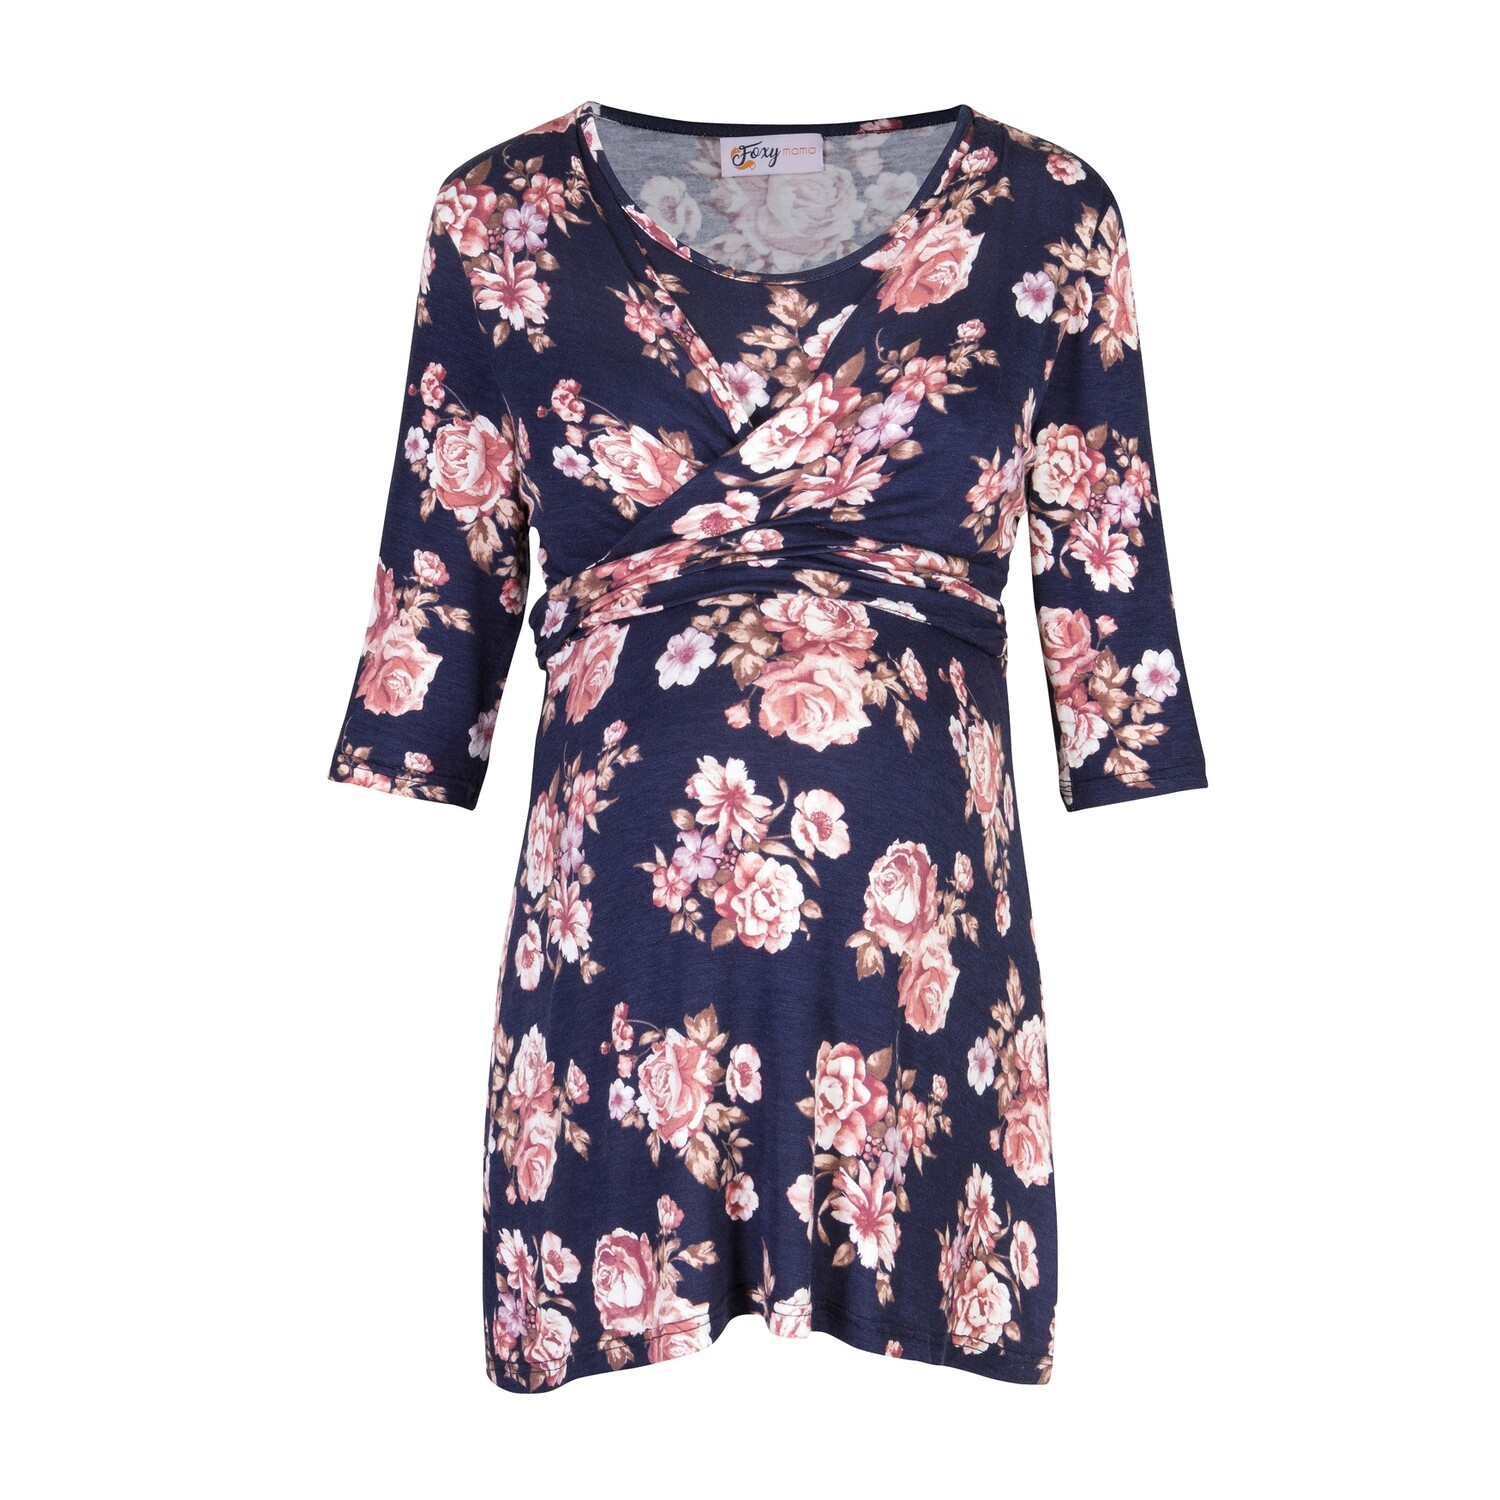 Navy Floral Nursing Wrap Top